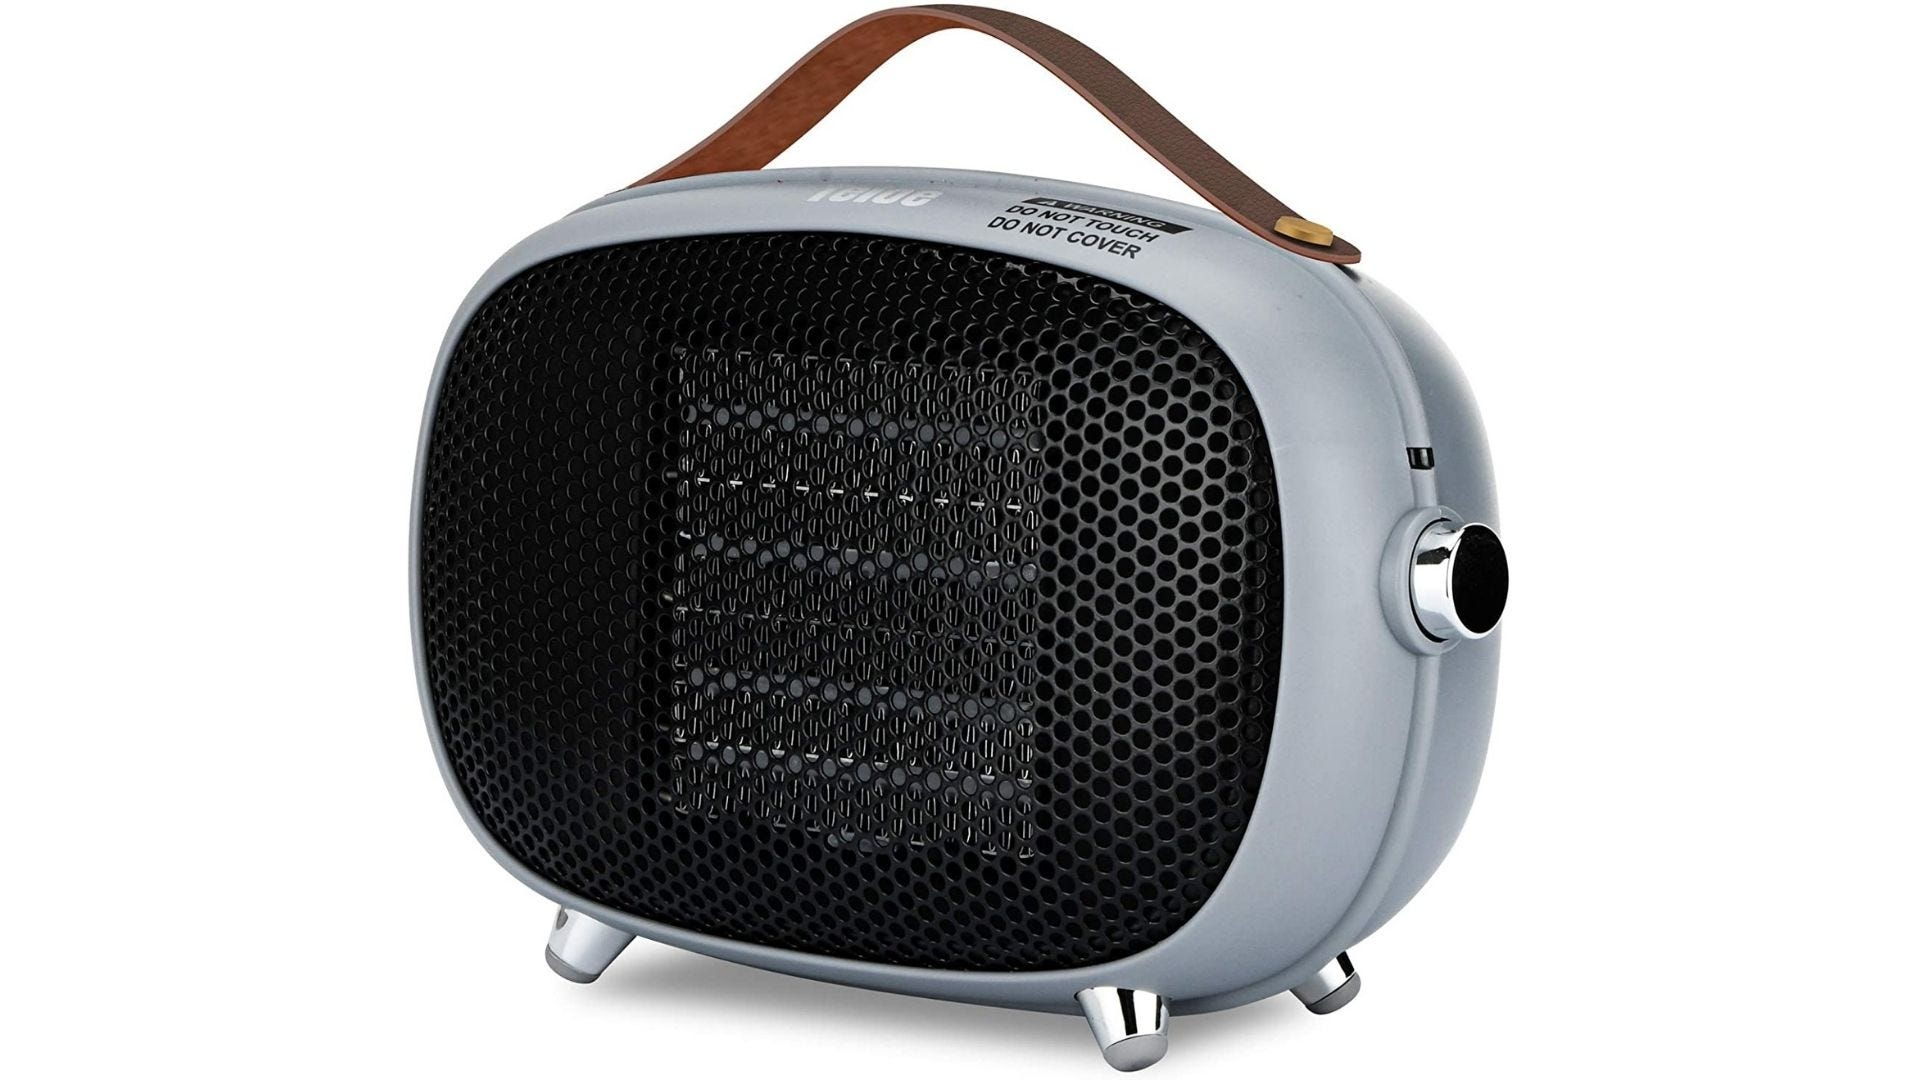 Cute space heater with a handy carry strap.